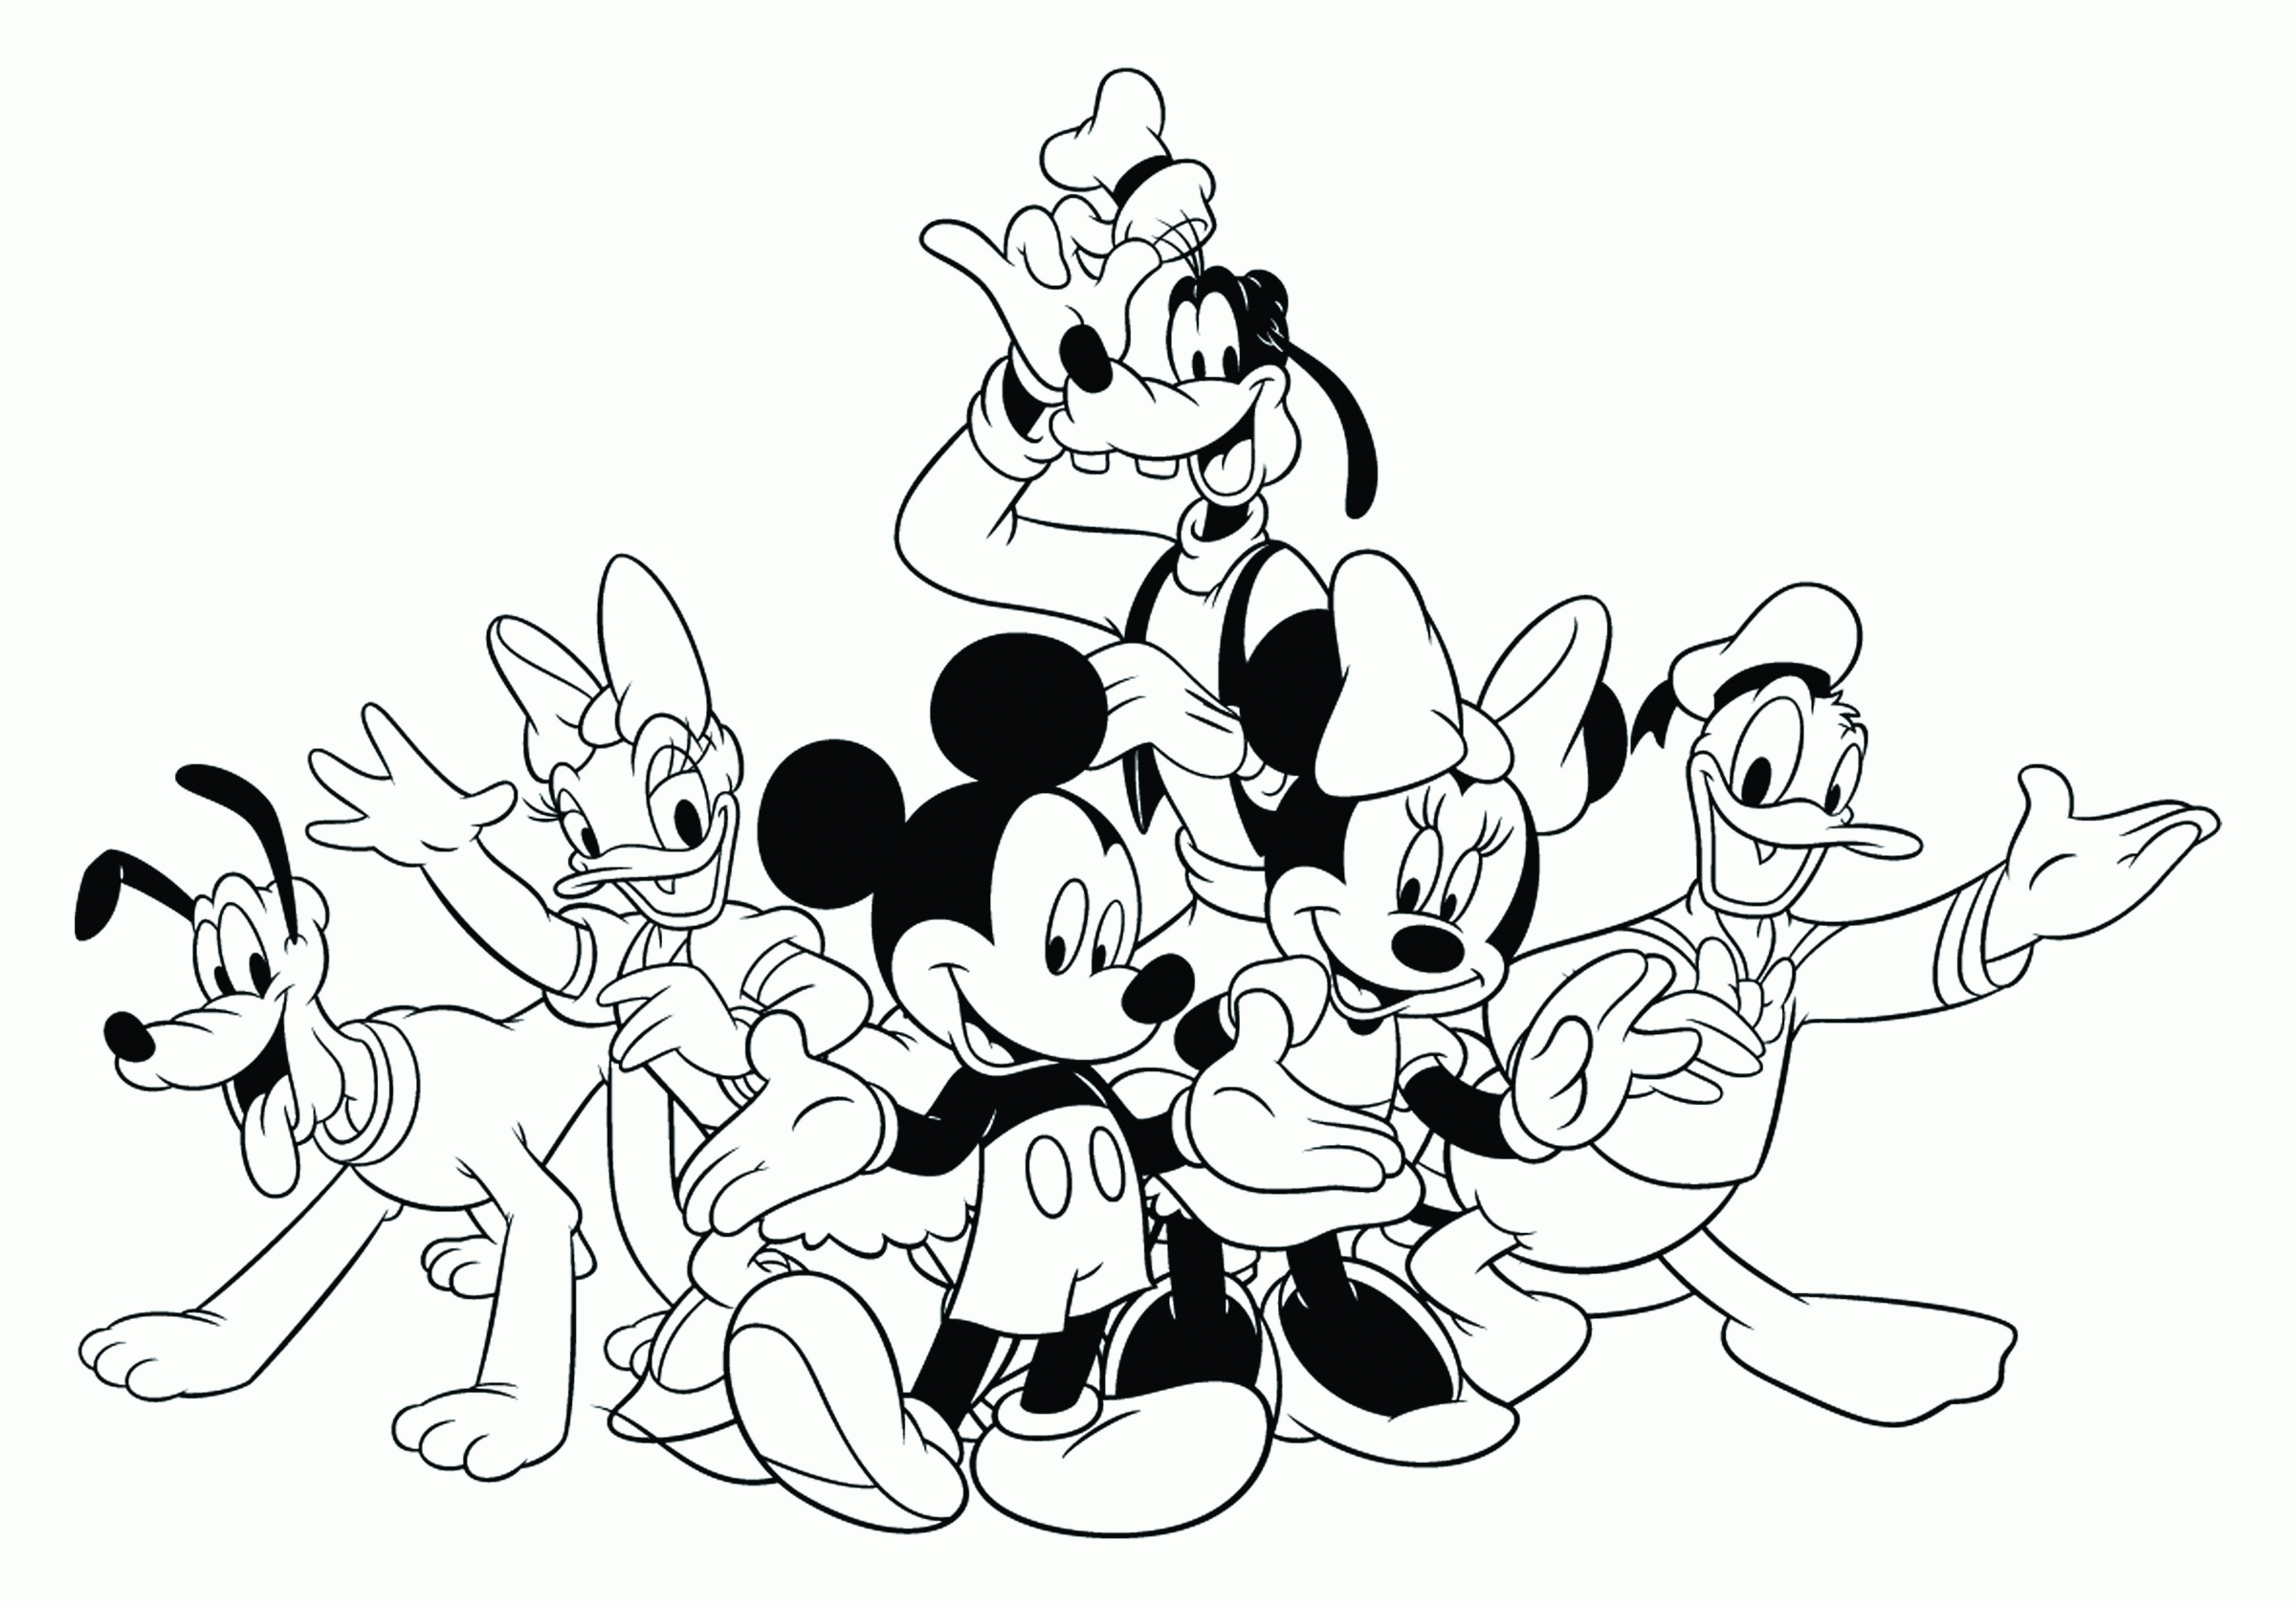 disney coloring pages for adults - walt disney world coloring pages free